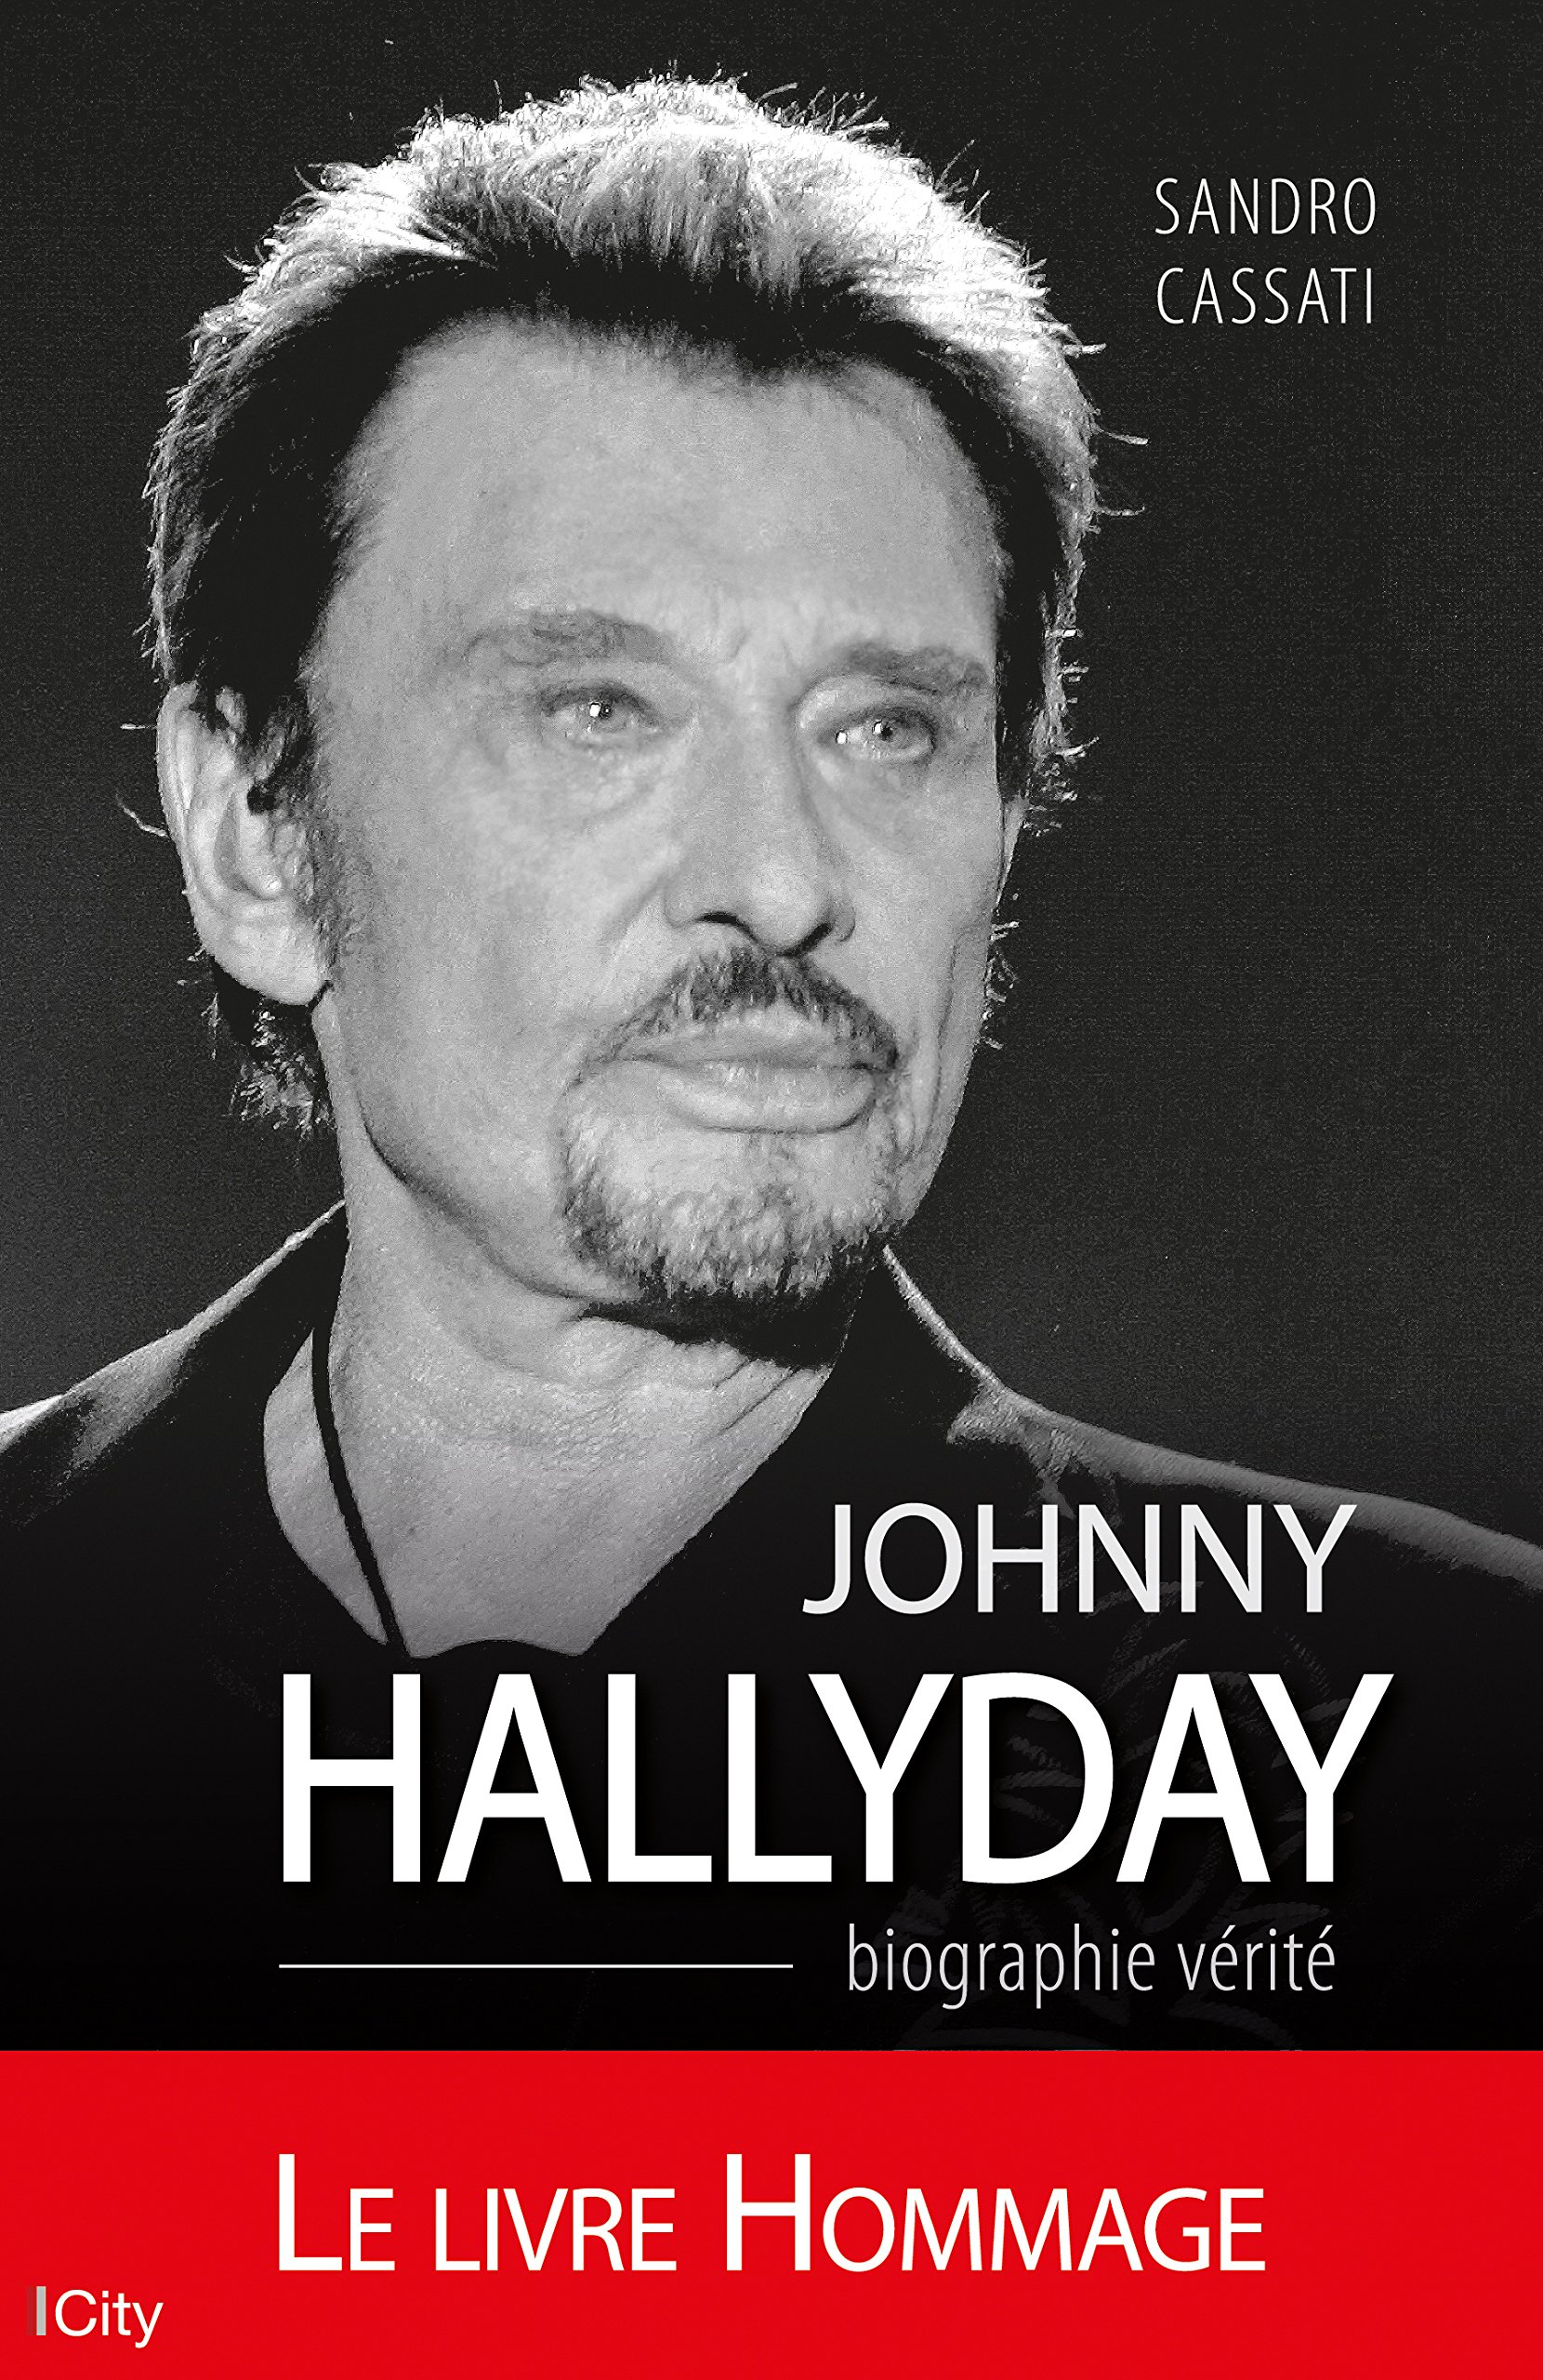 Johnny Hallyday Biographie Verite Amazon Fr Sandro Cassati